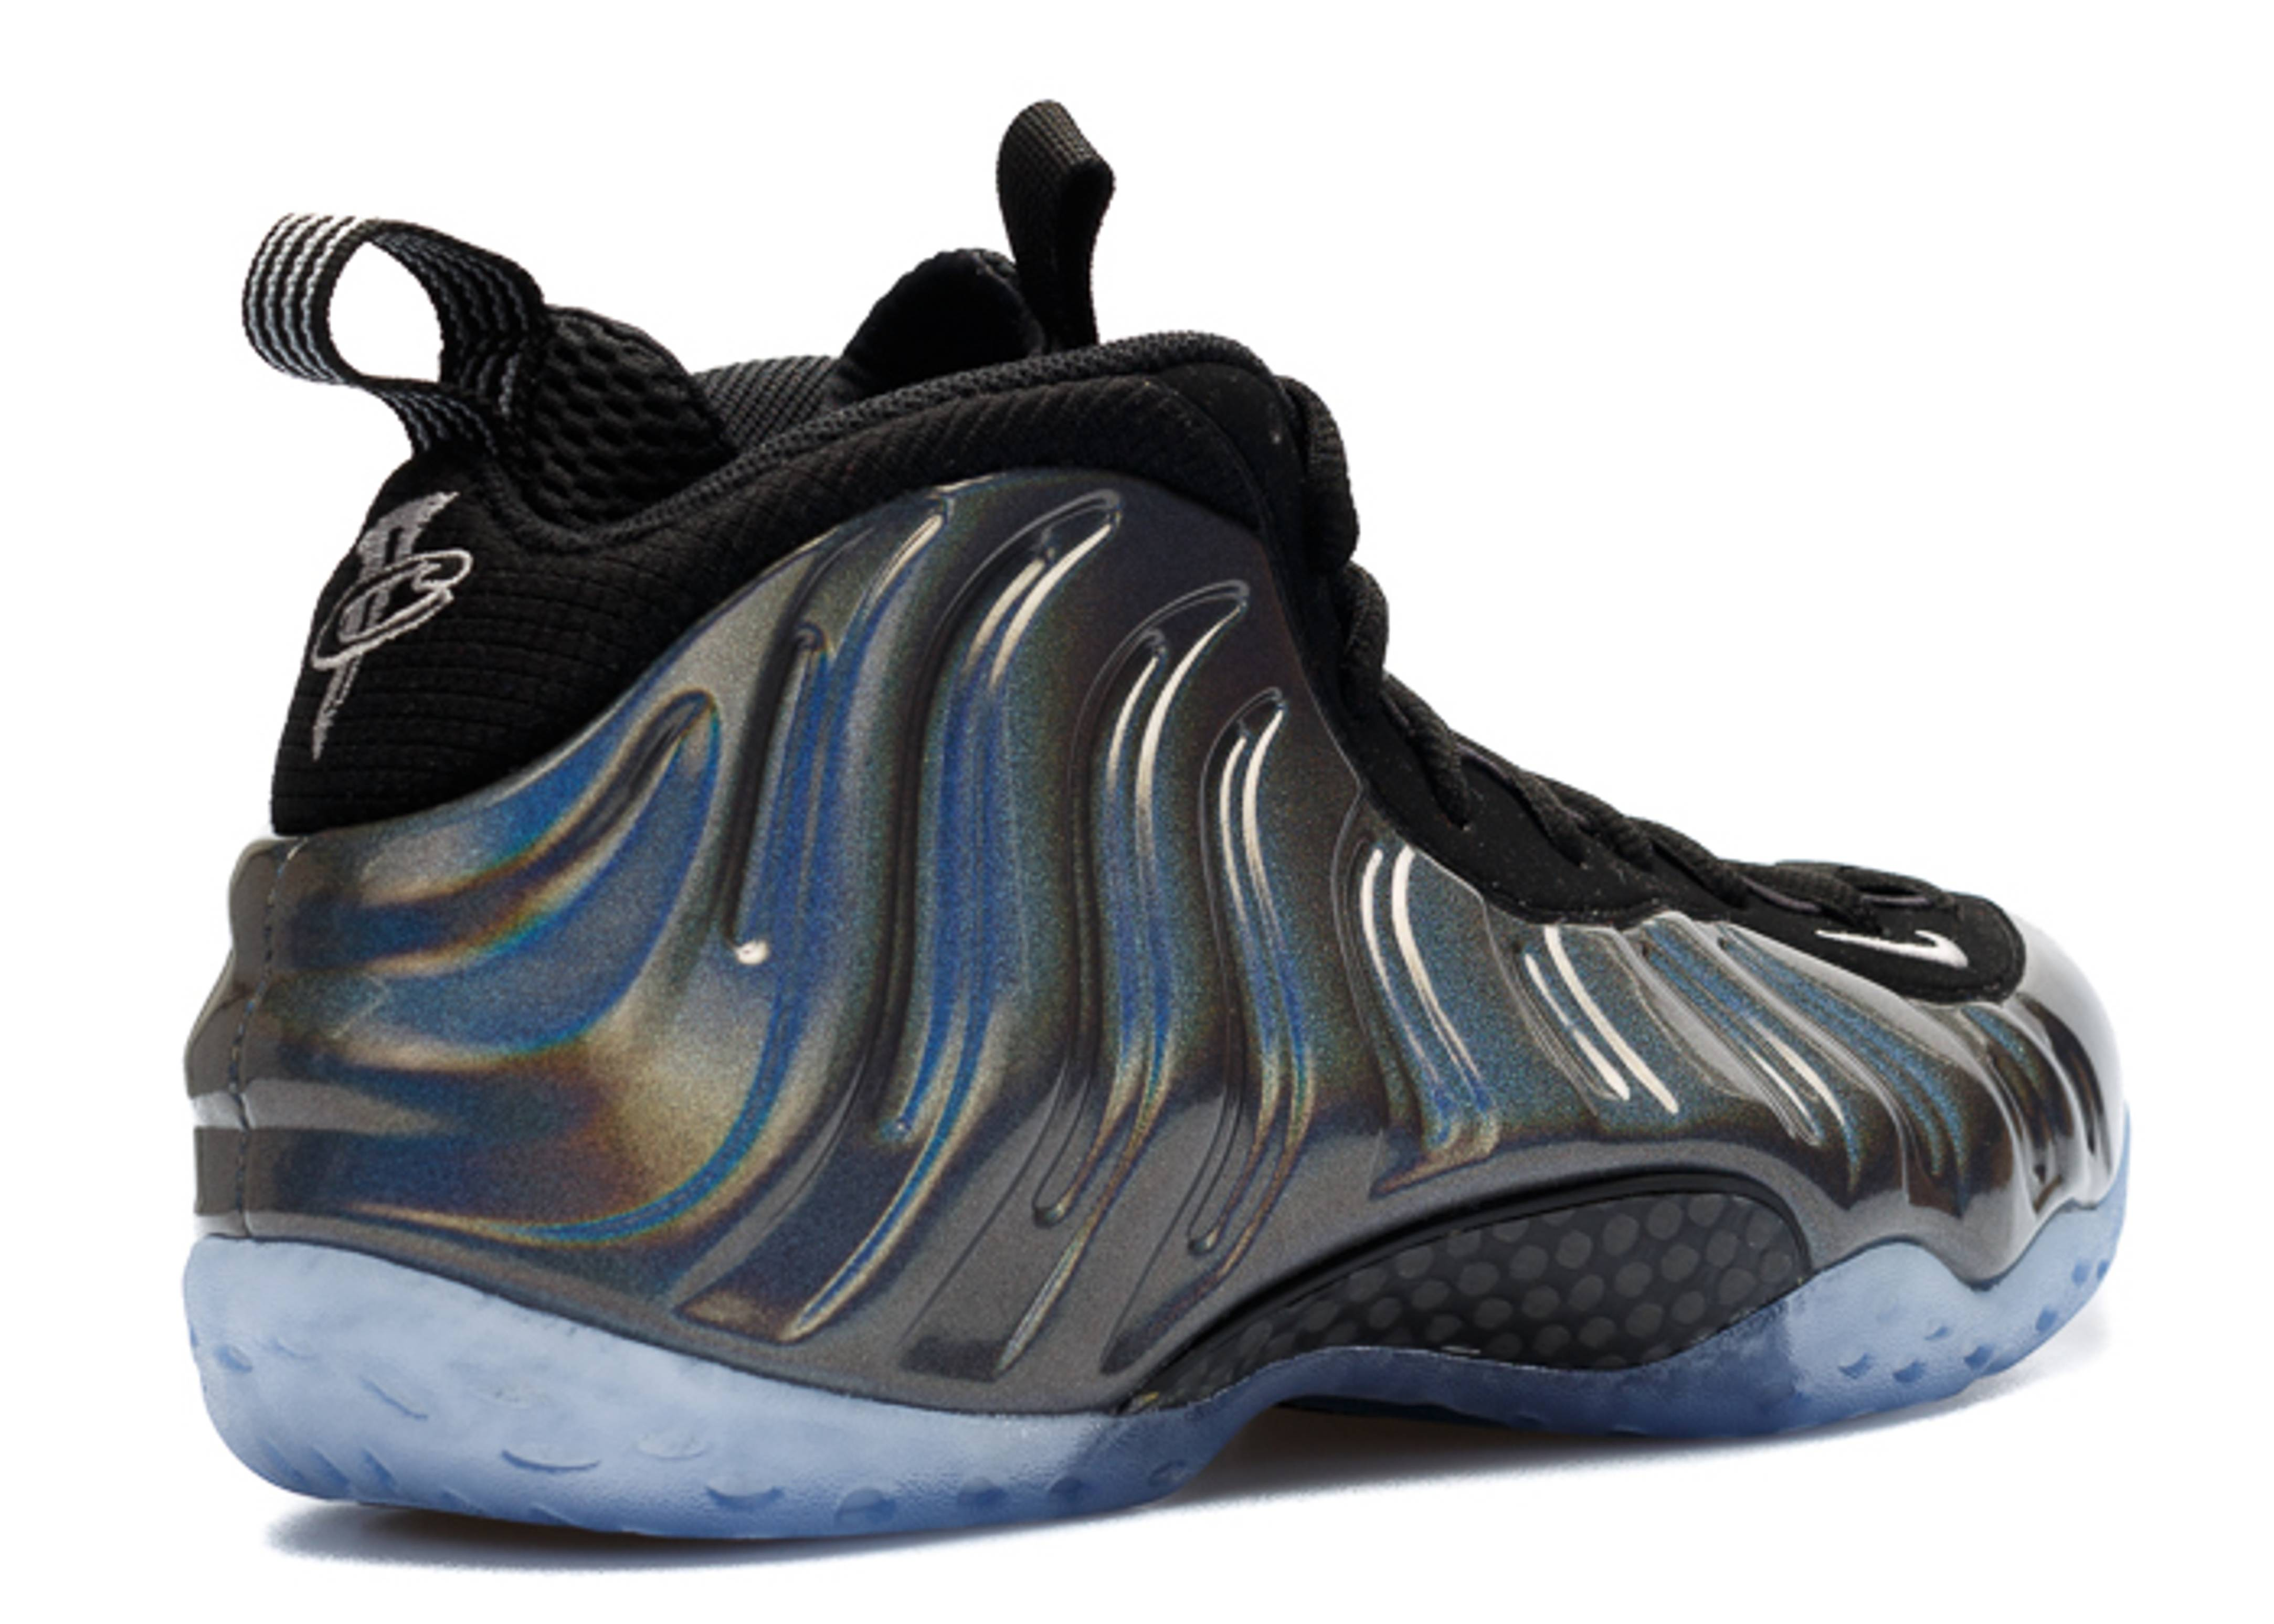 CHICAGO BULLS SEE THROUGH AIR FOAMPOSITE ONE ...